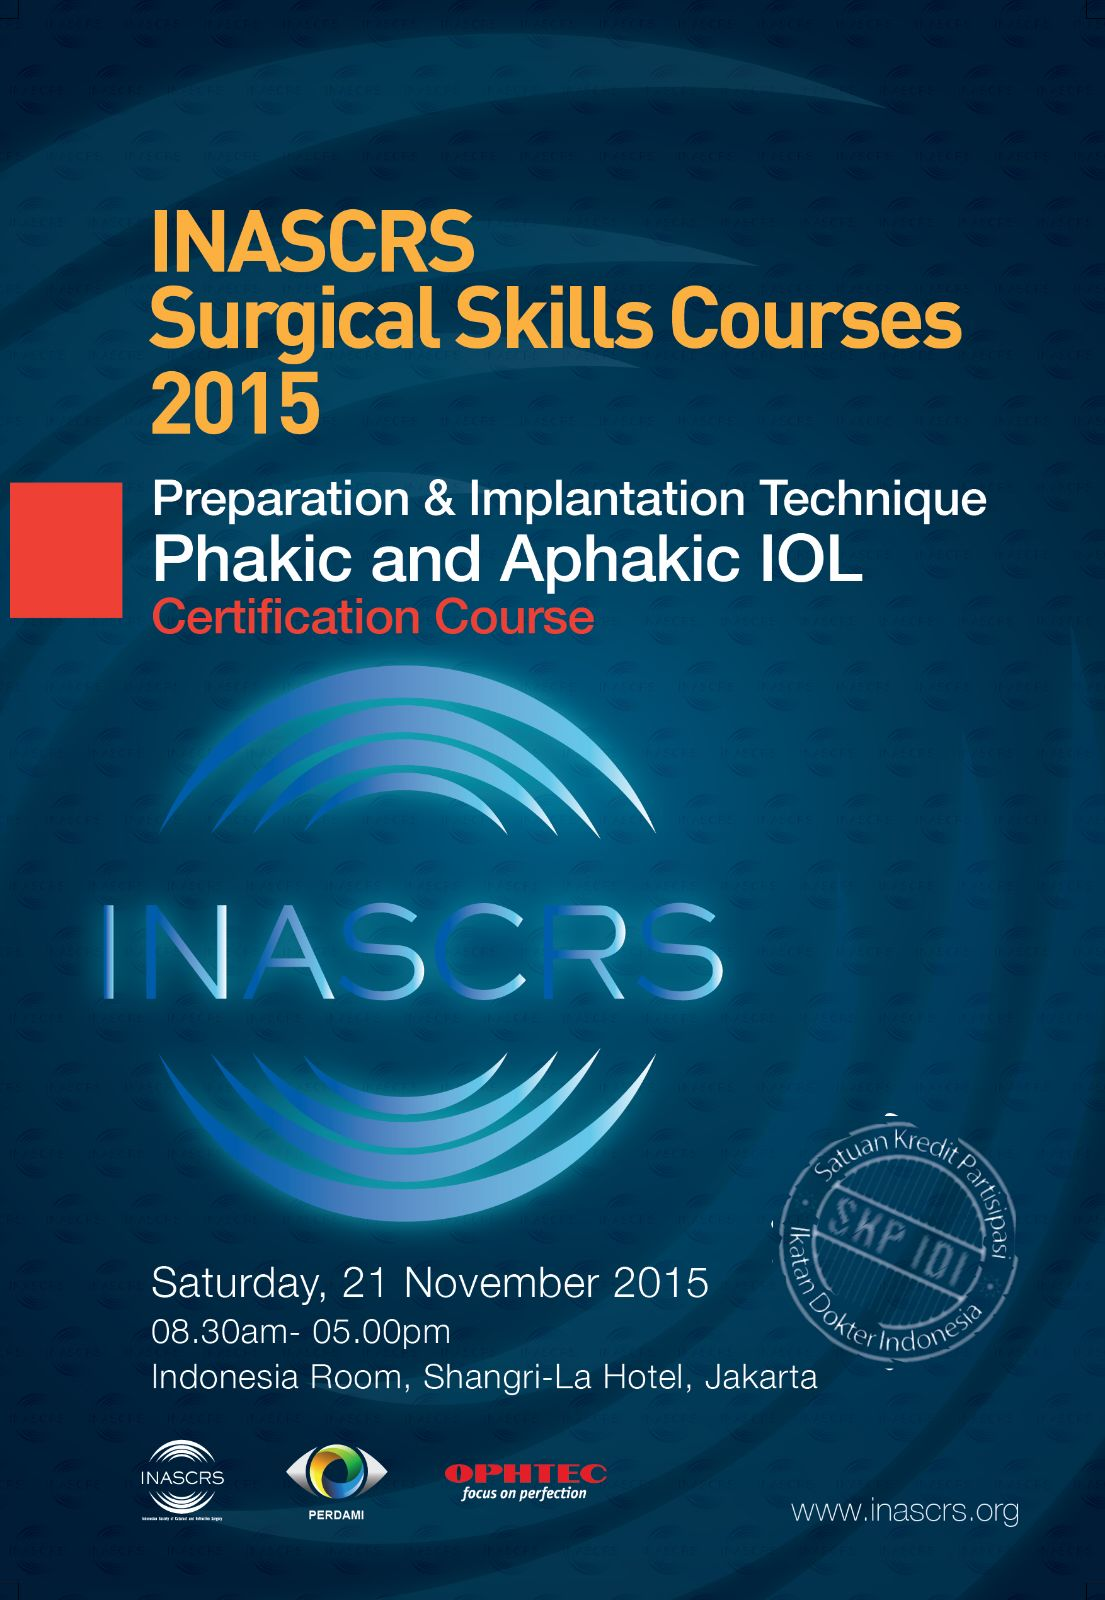 INASCRS Surgical Skills Courses 2015